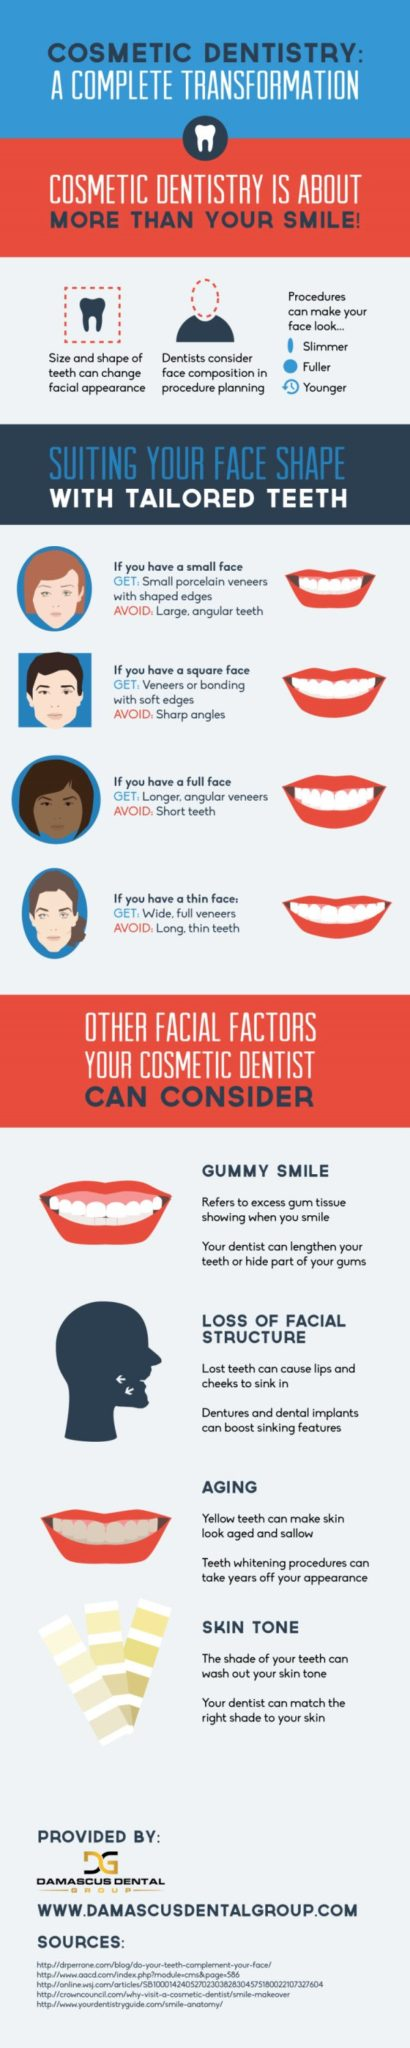 Cosmetic dentistry: A Complete transformation Infographic by Damascus Dental Group